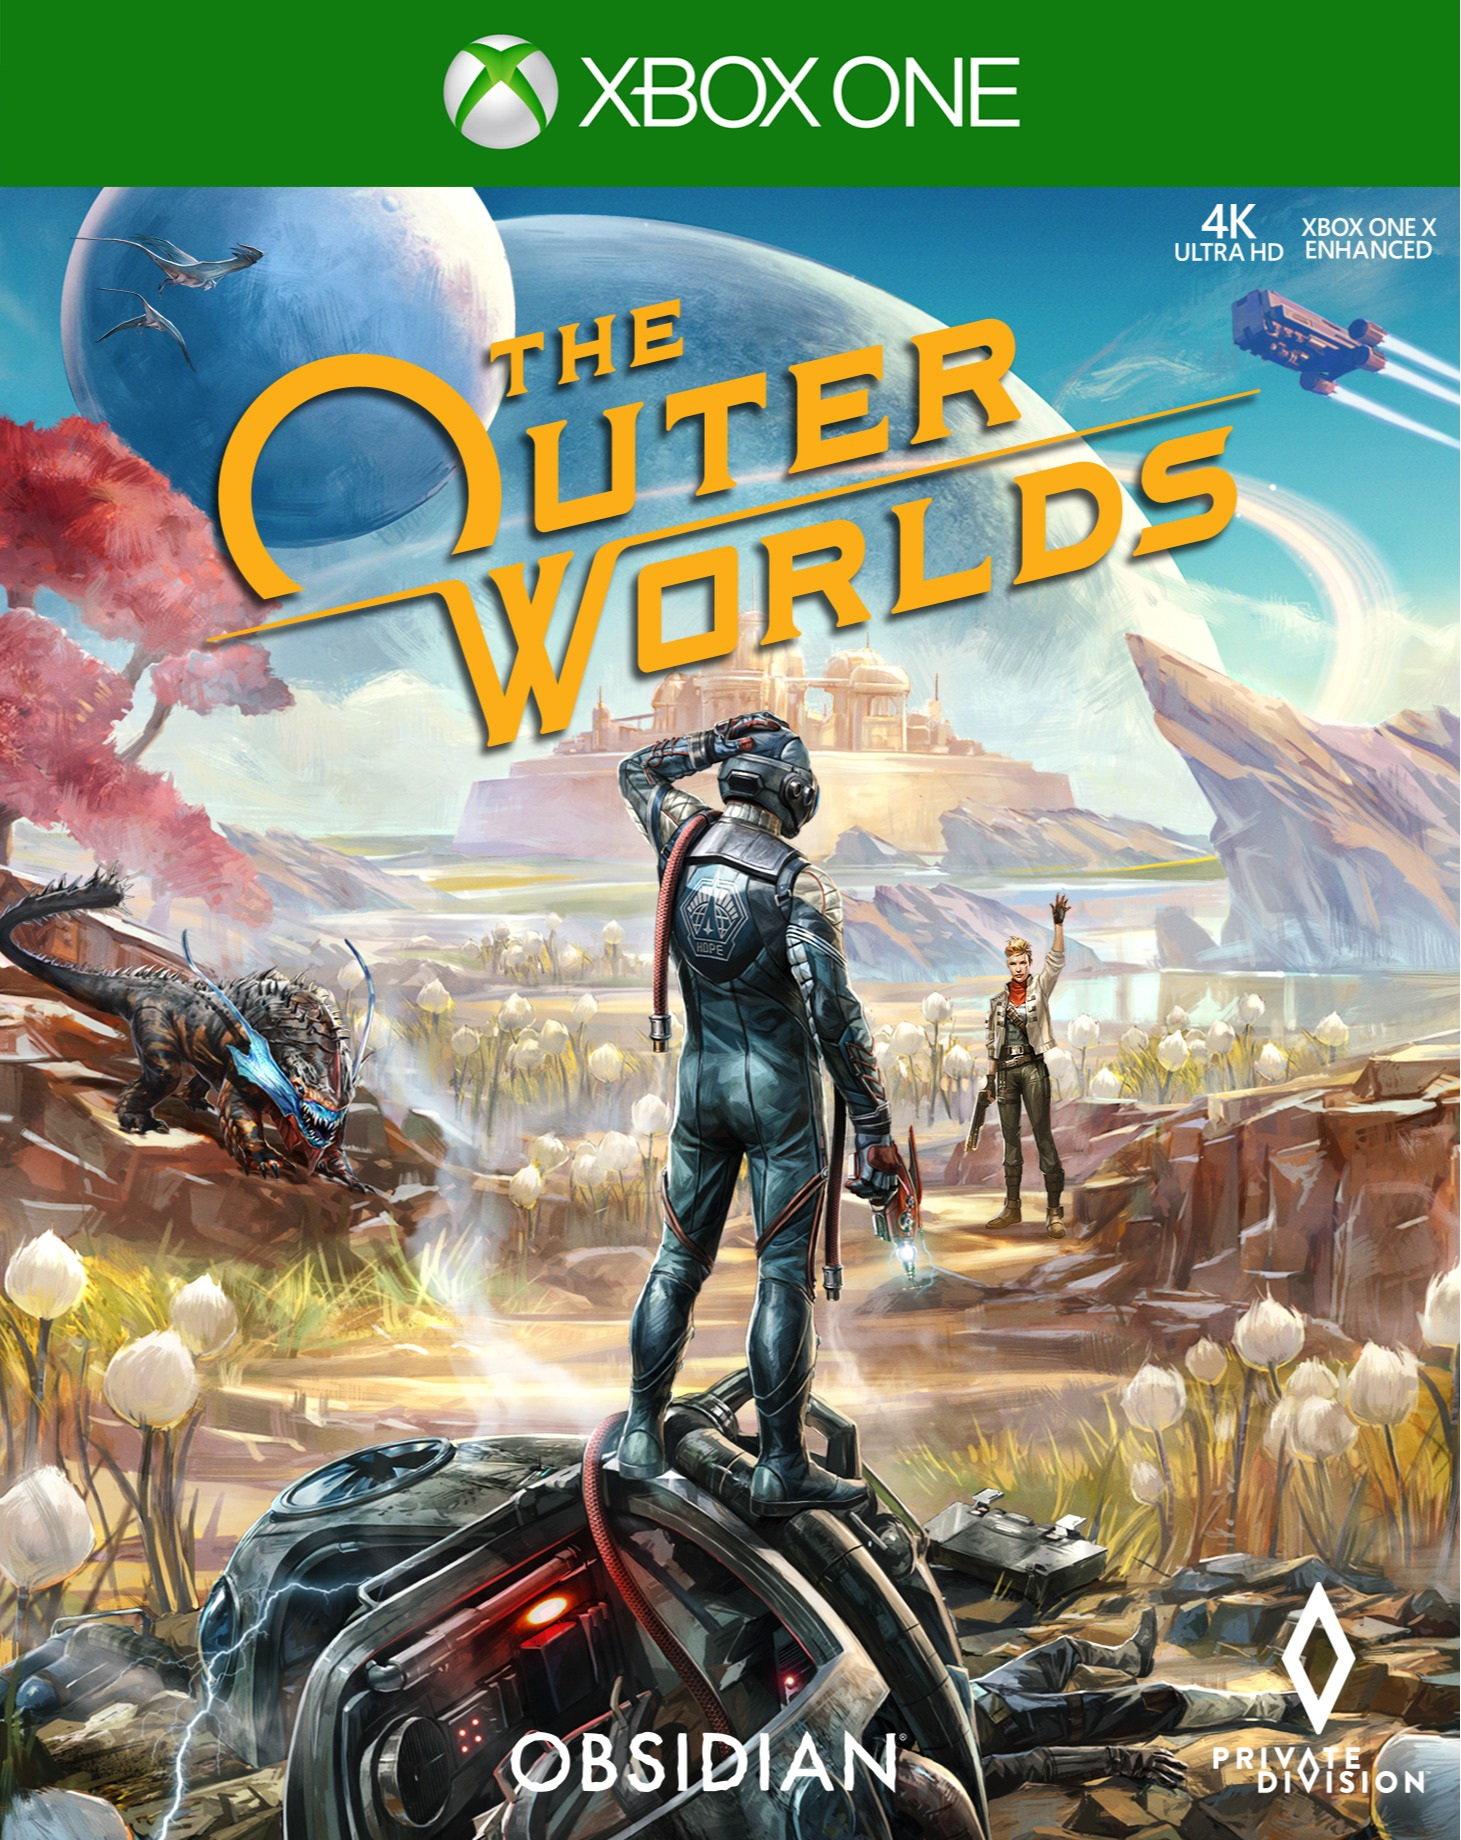 The Outer Worlds (XONE)